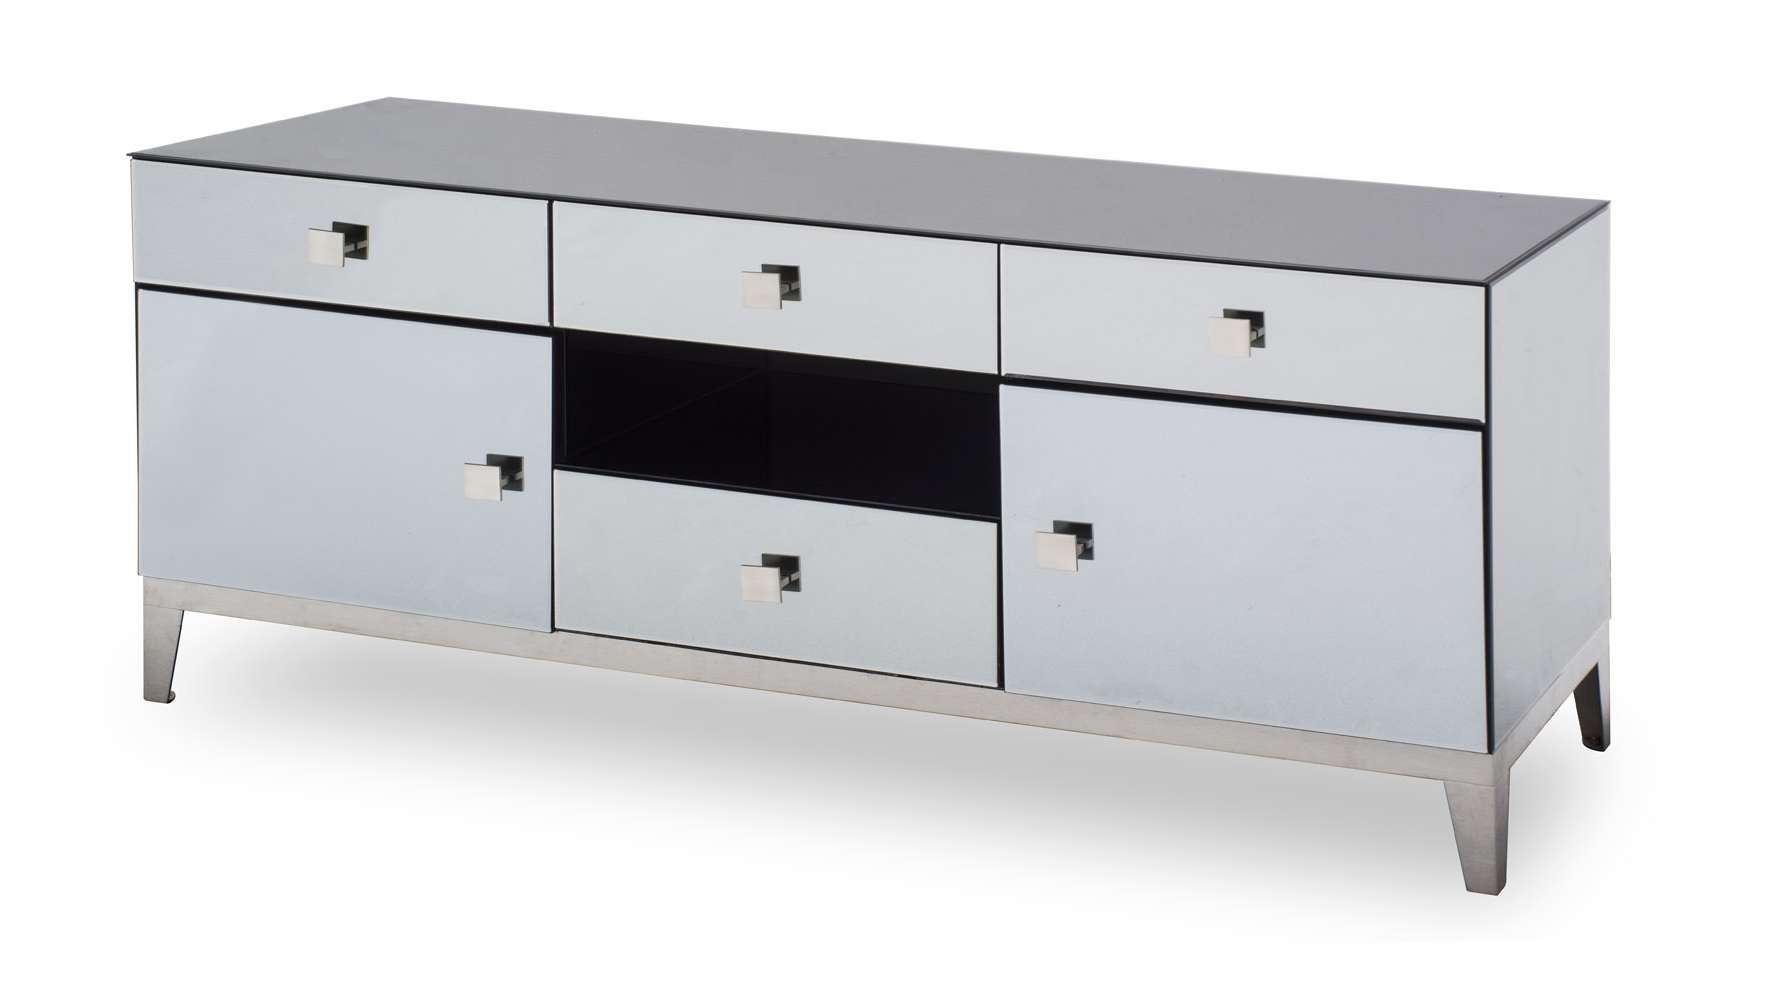 Modern Grey Mirrored Glass Berlin Tv Stand | Zuri Furniture Within Mirror Tv Cabinets (View 13 of 20)